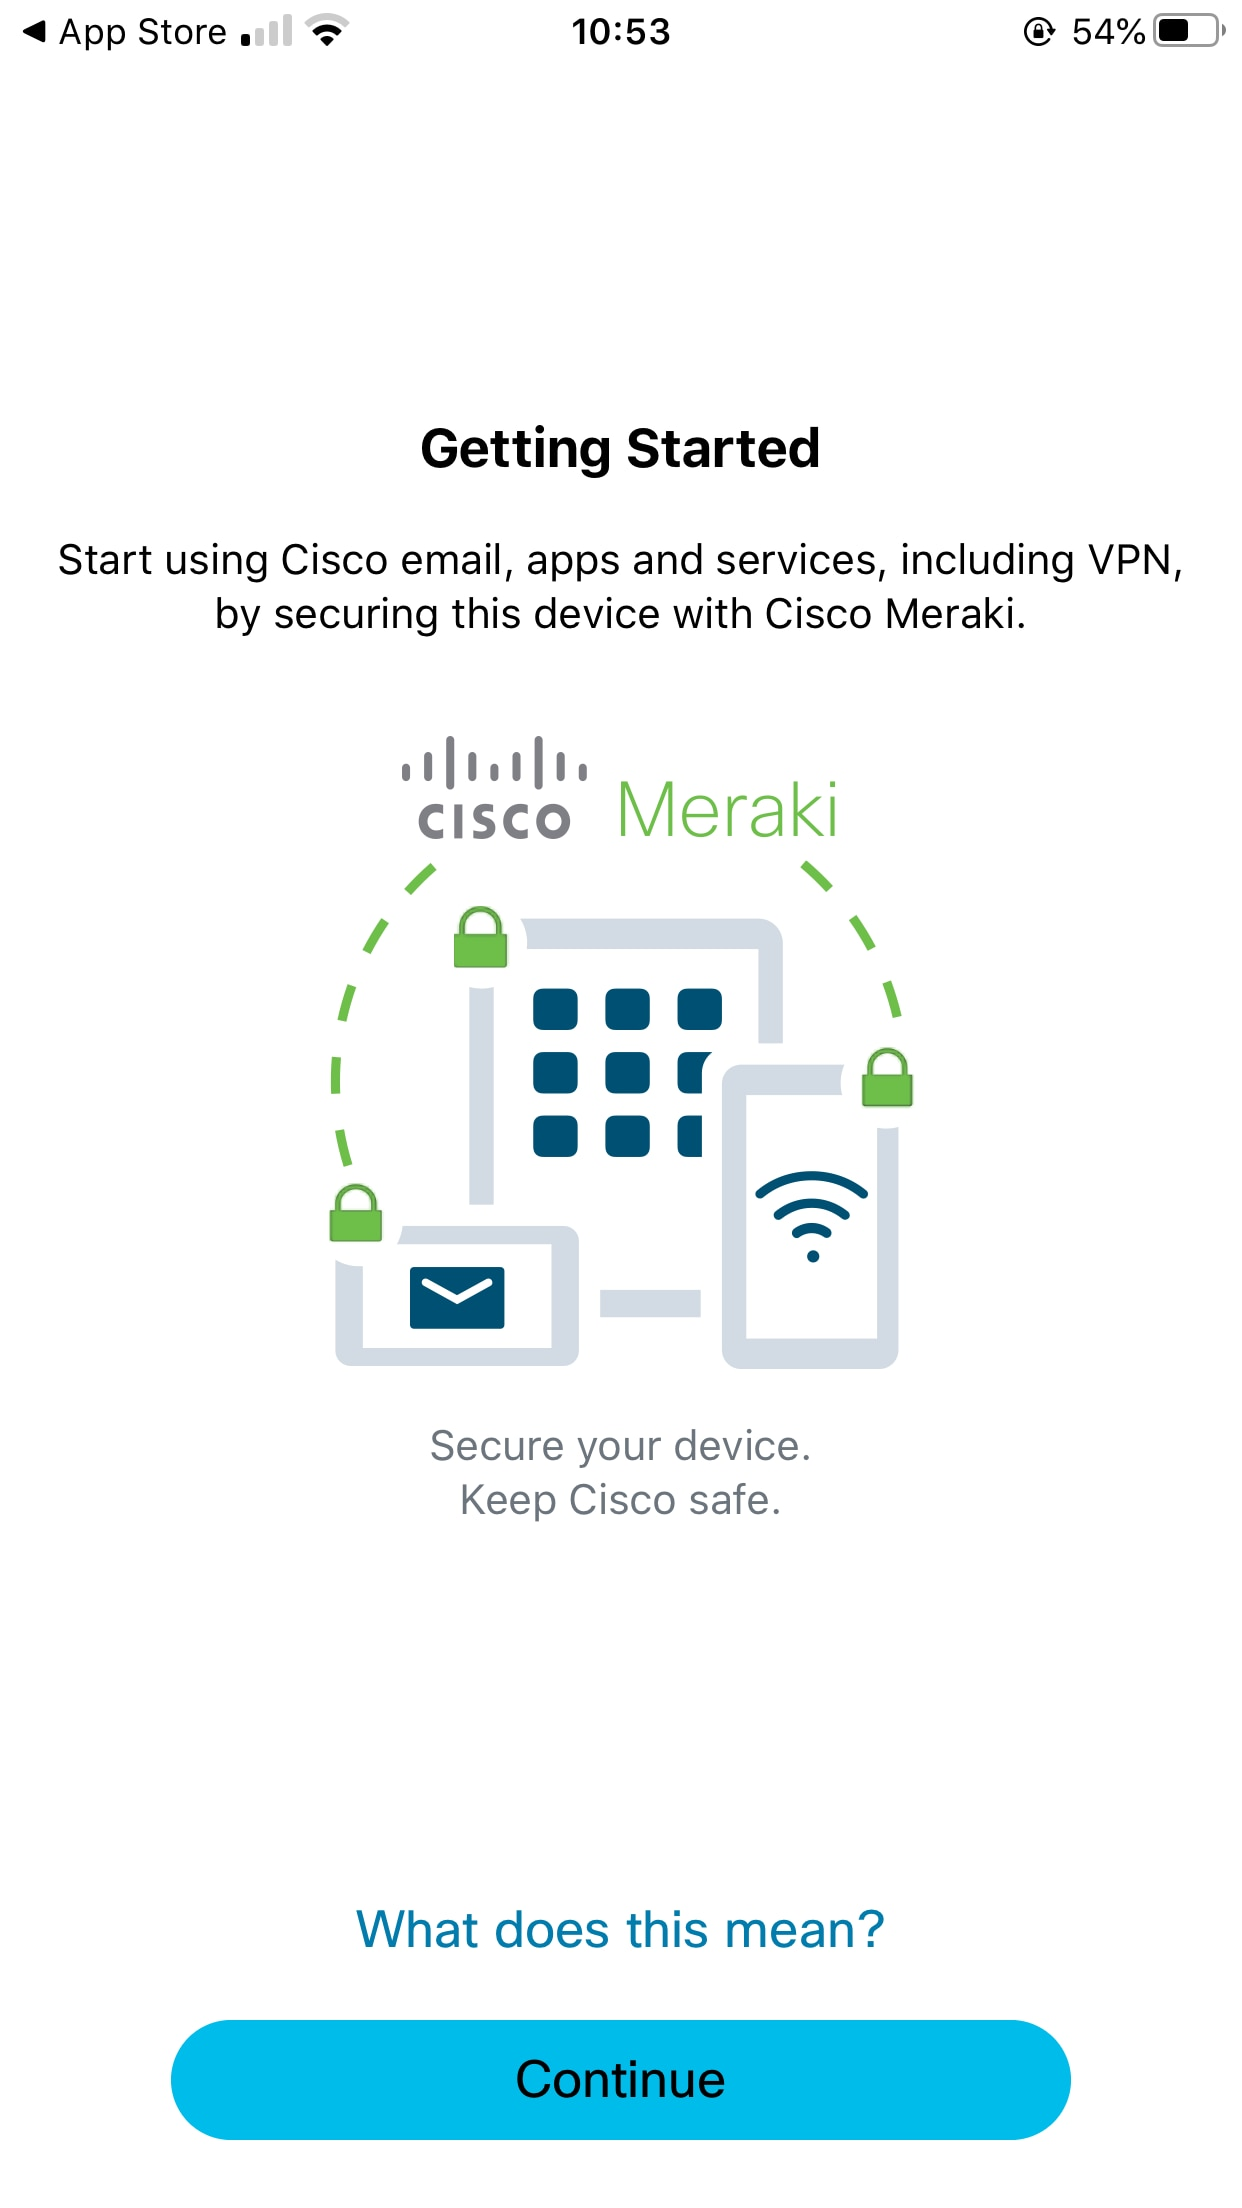 Screenshot of getting started page on mobile app